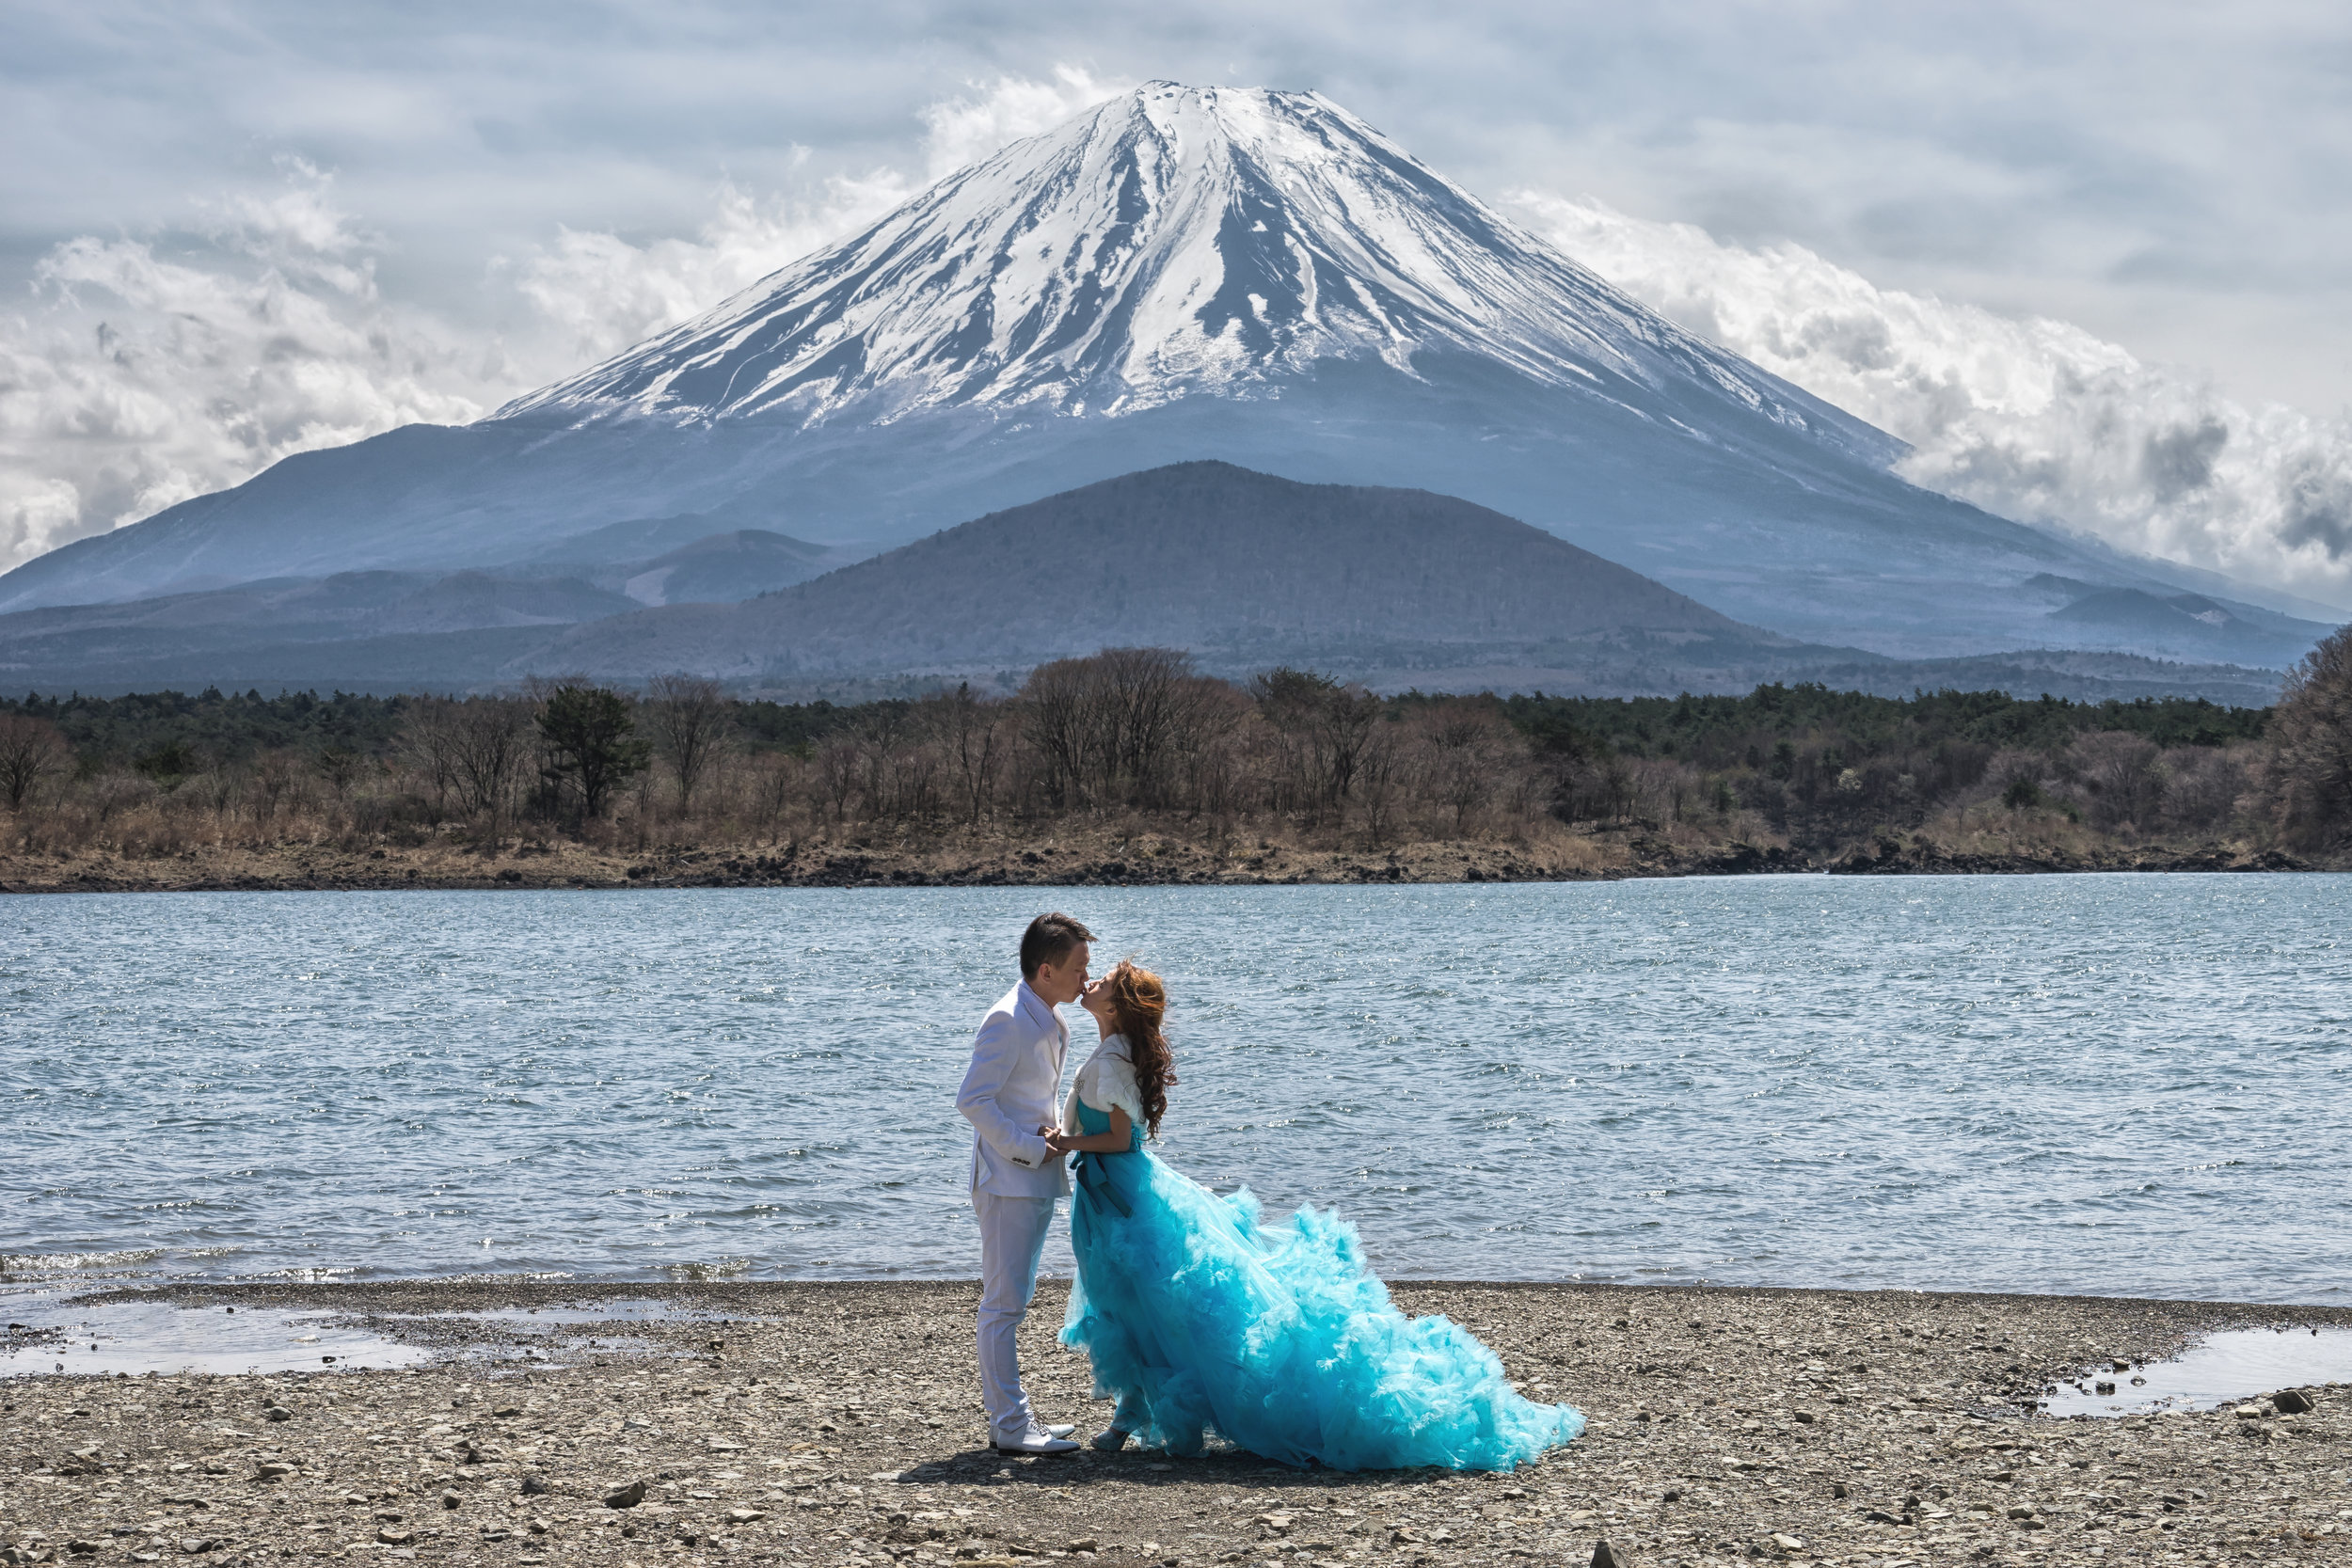 Pre-wedding - Your very own fairy tale, local or overseas